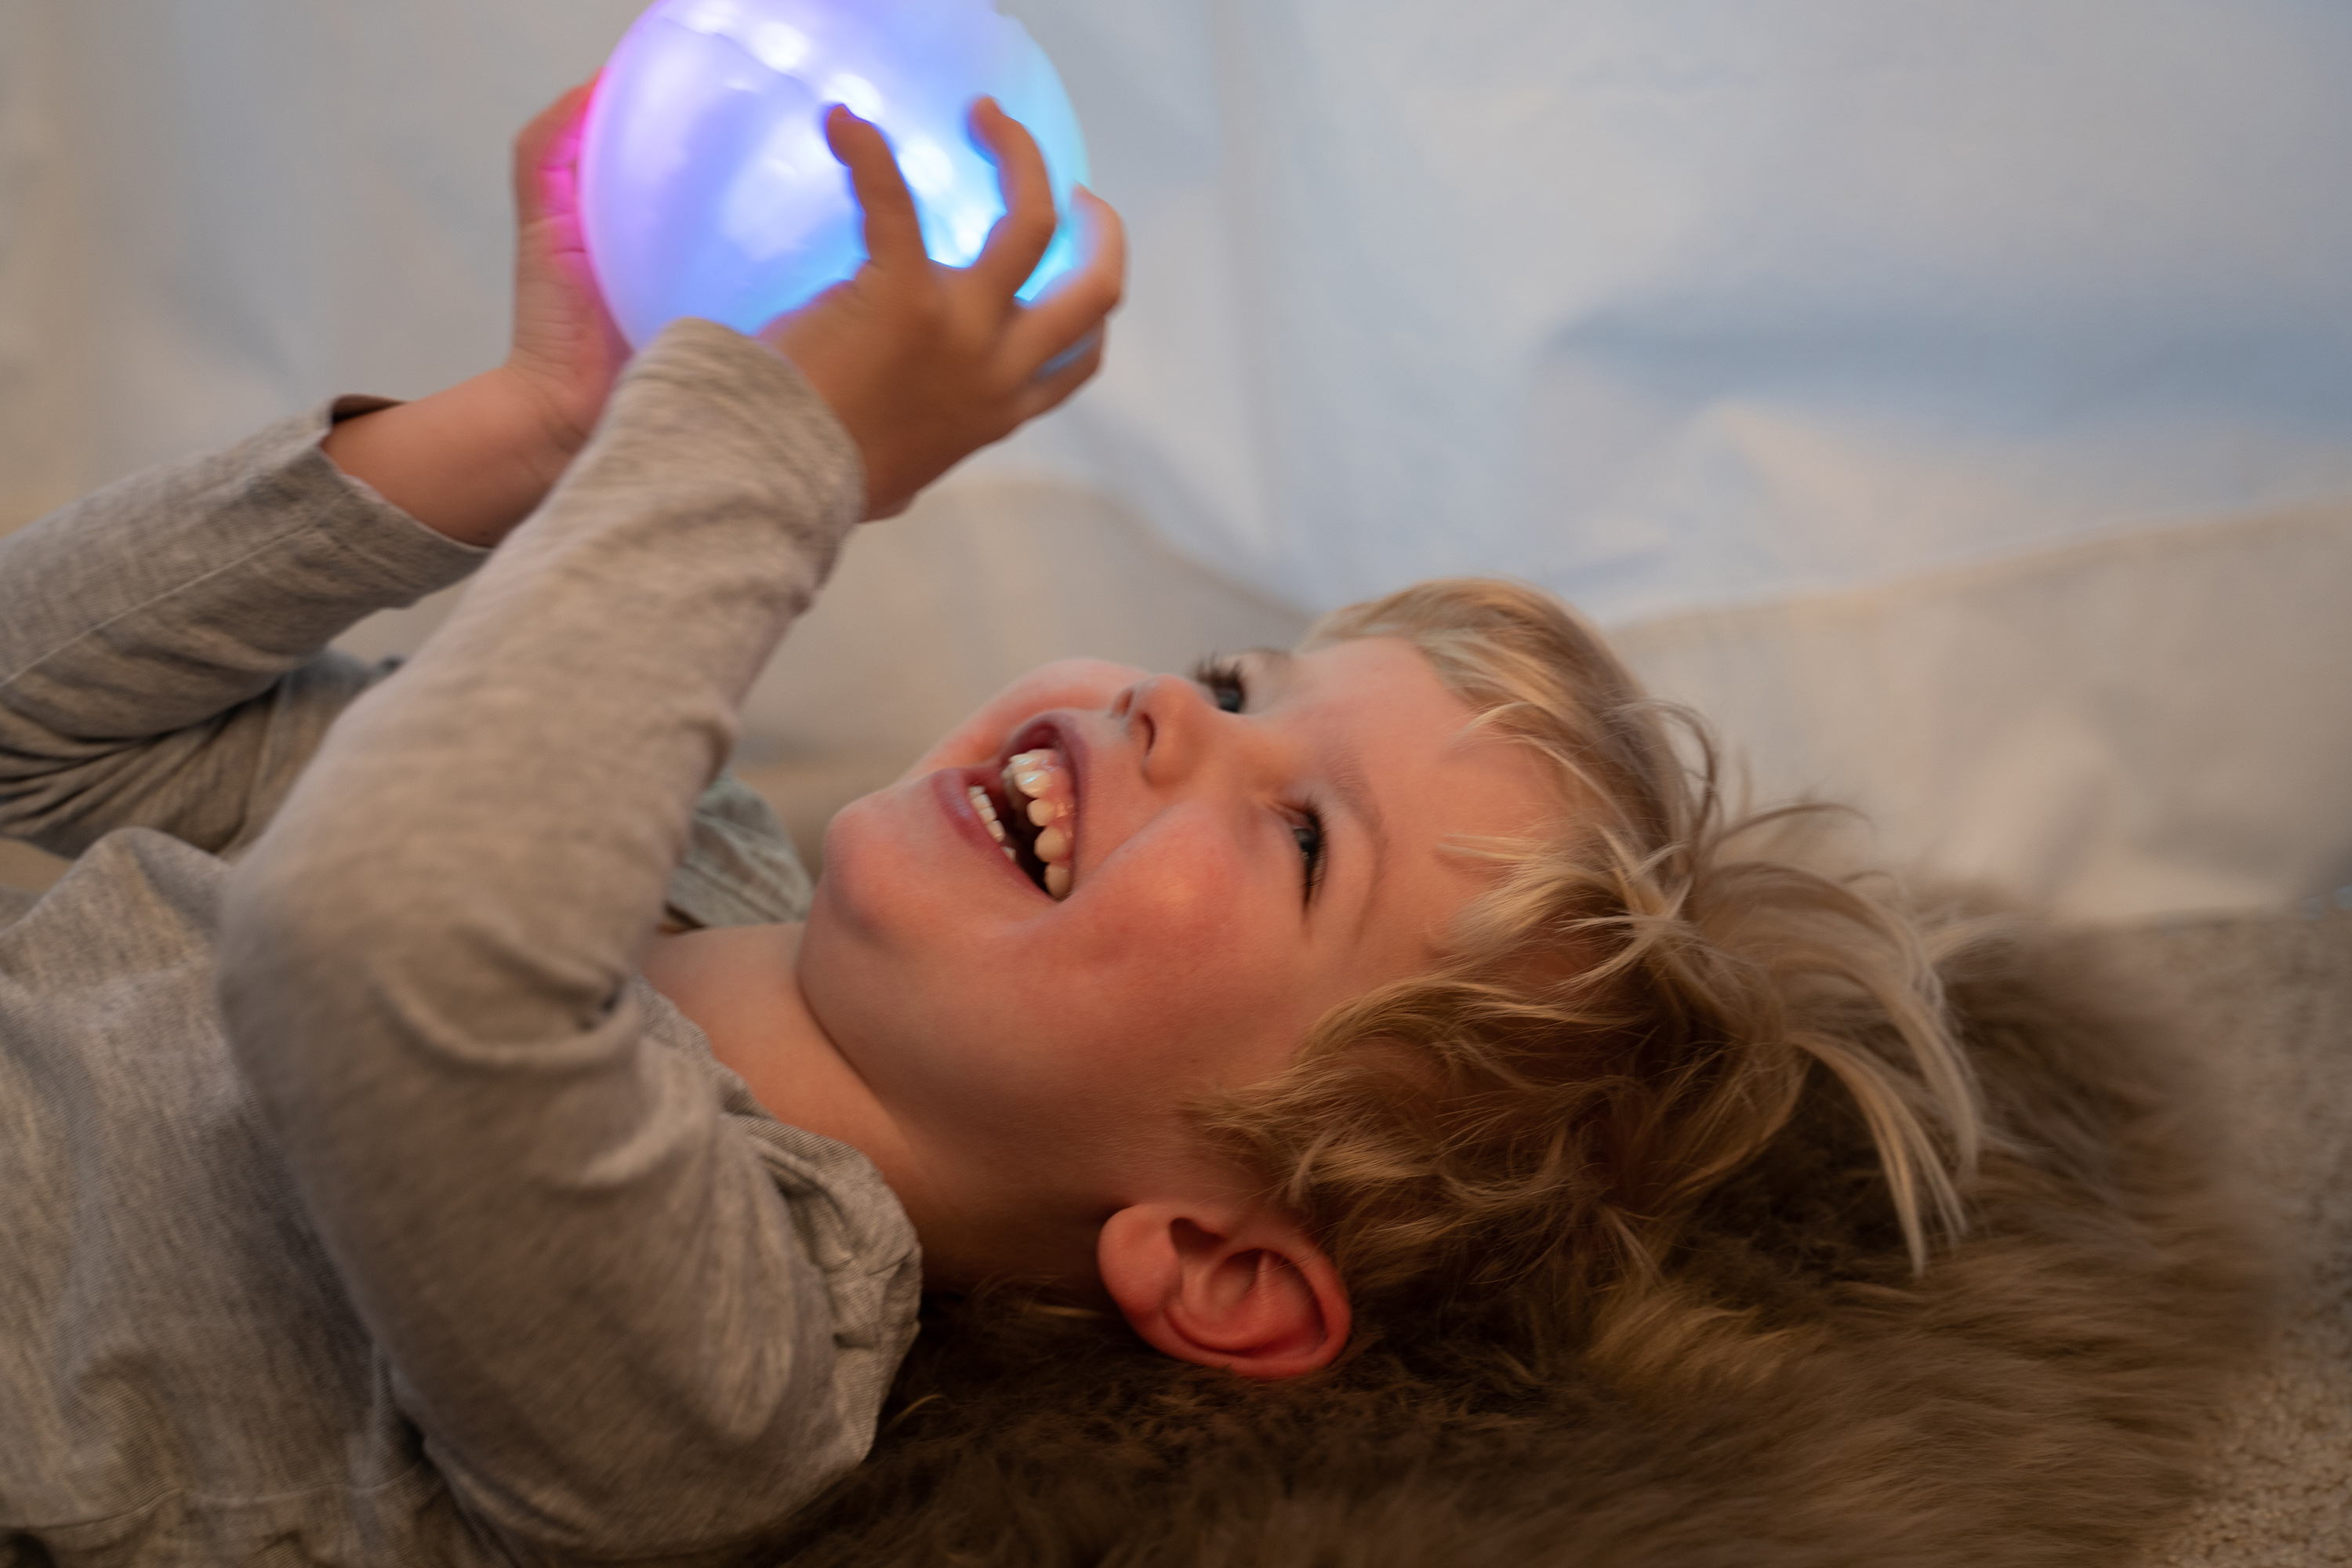 The therapy ball ichó was developed to promote cognitive and motor skills in a playful way. (Source: icho systems)